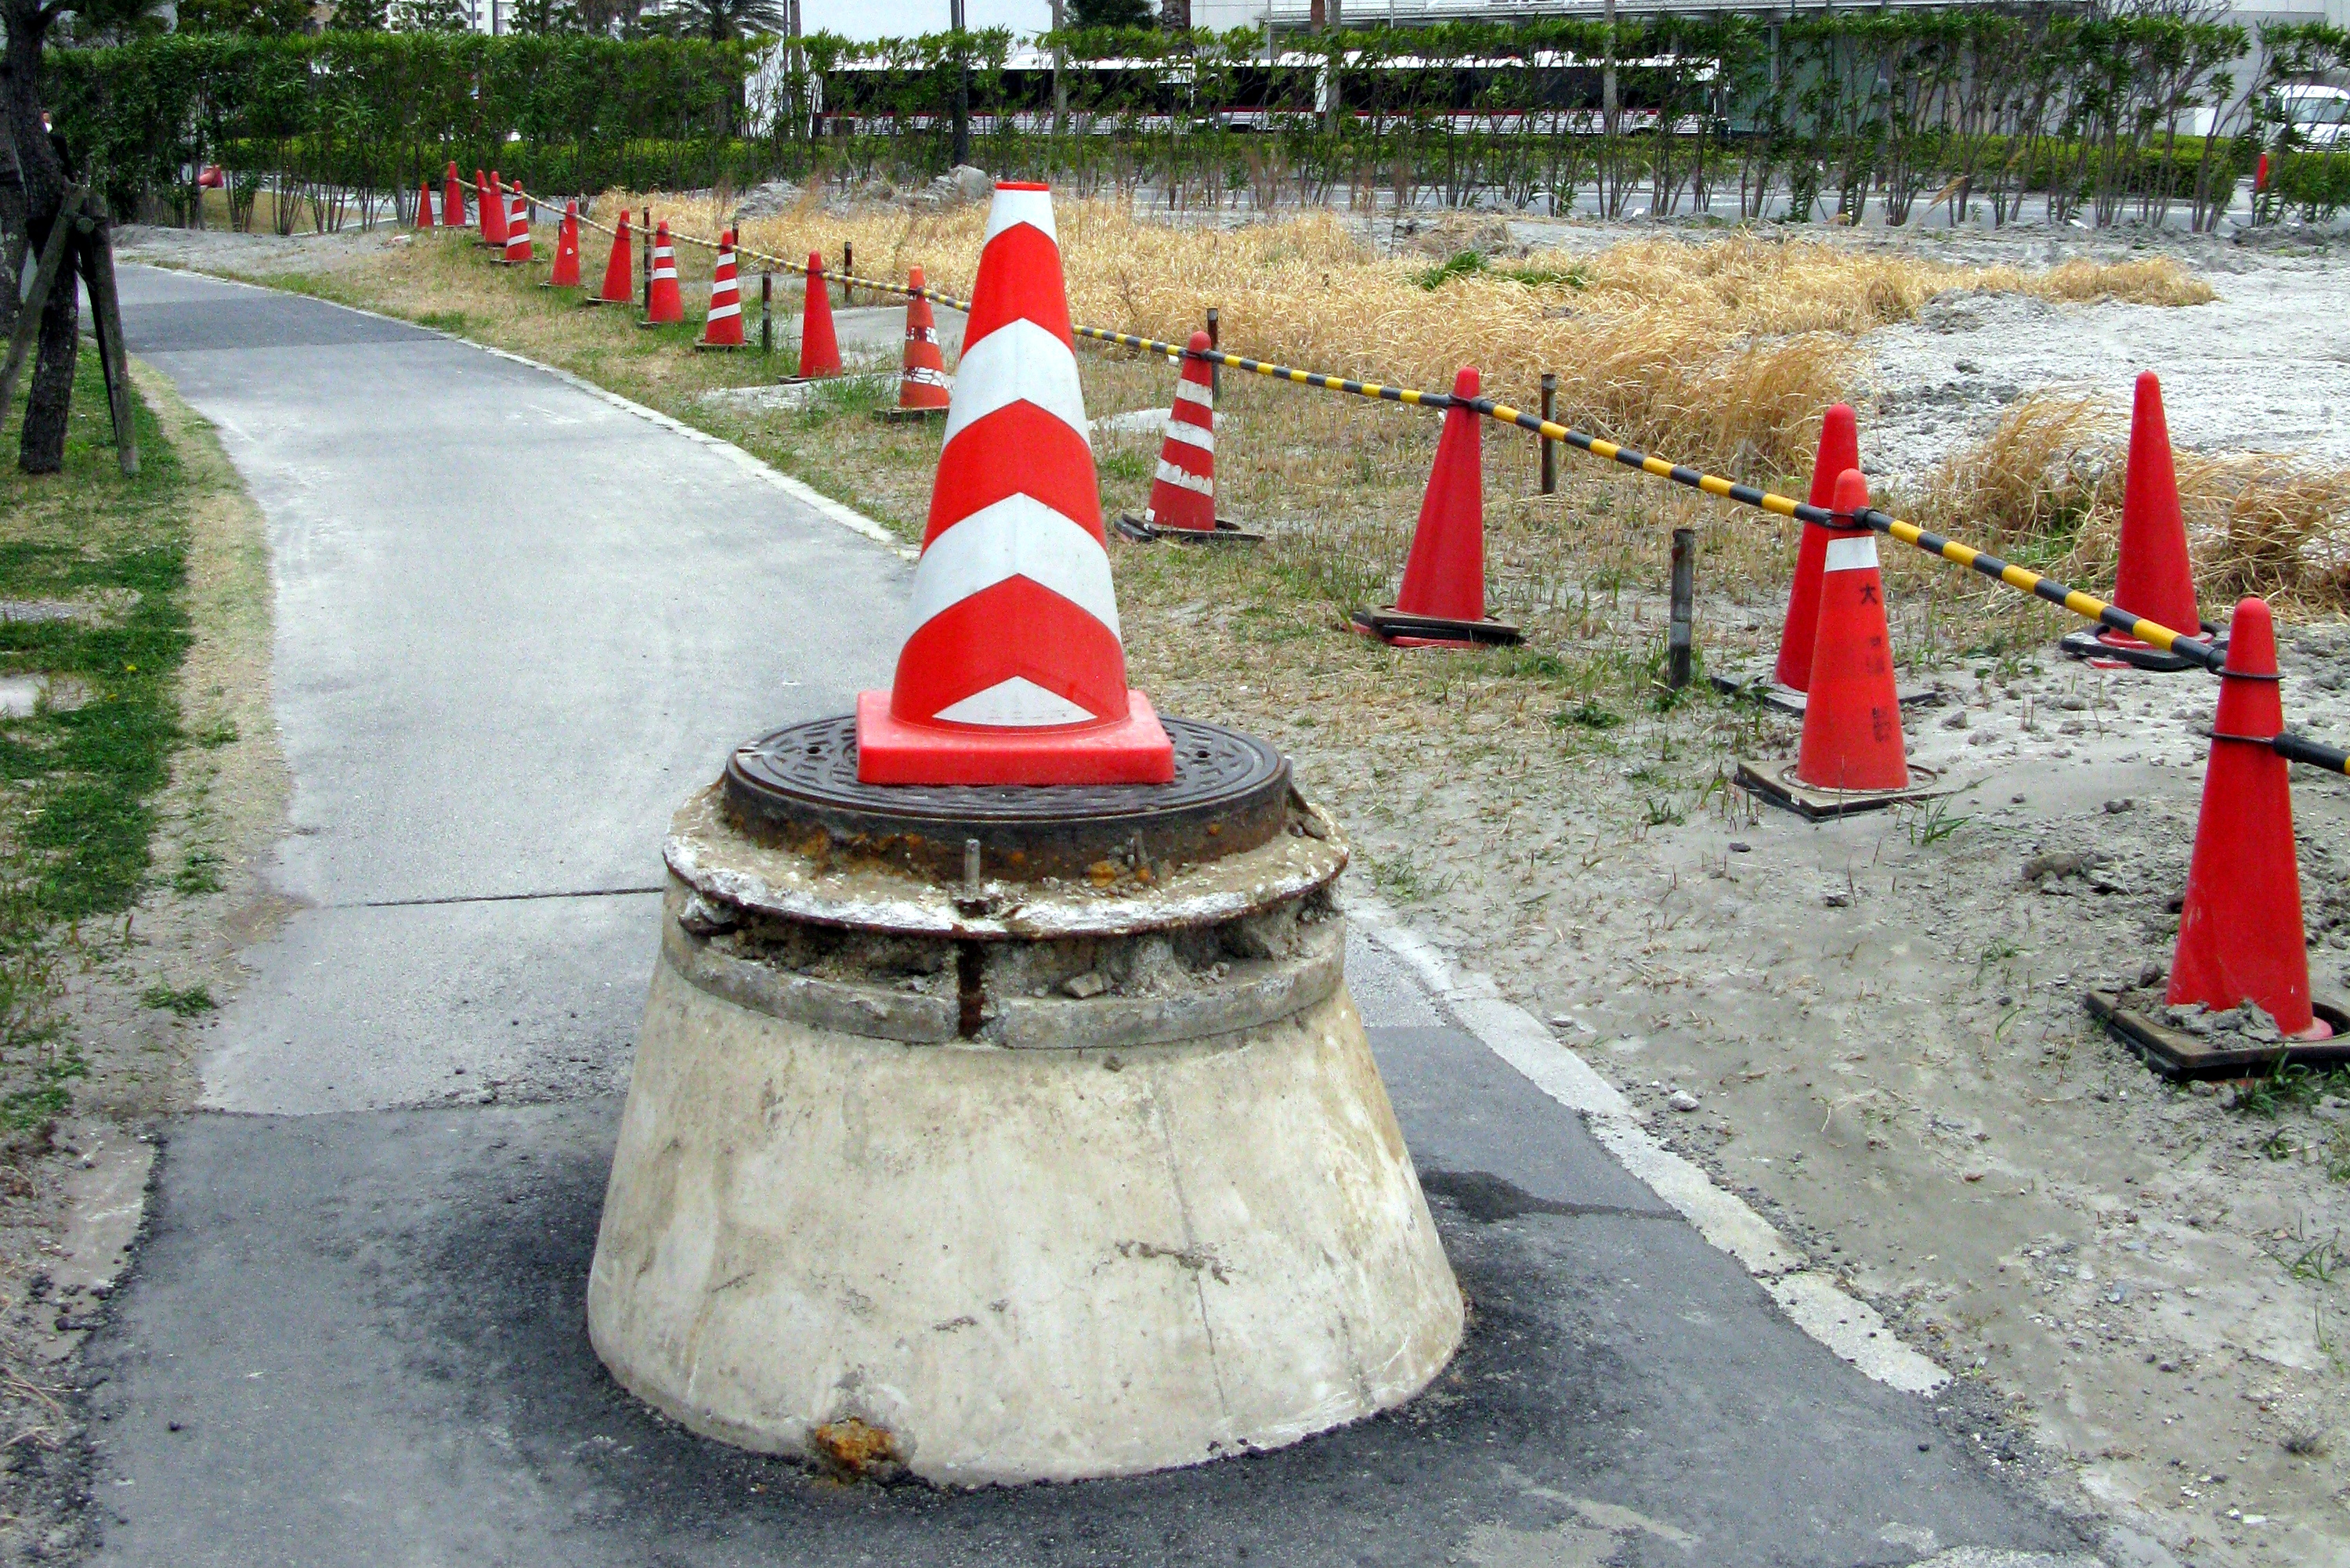 The tsunami and earthquake that caused Fukushima also damaged the sewerage system in Tokyo